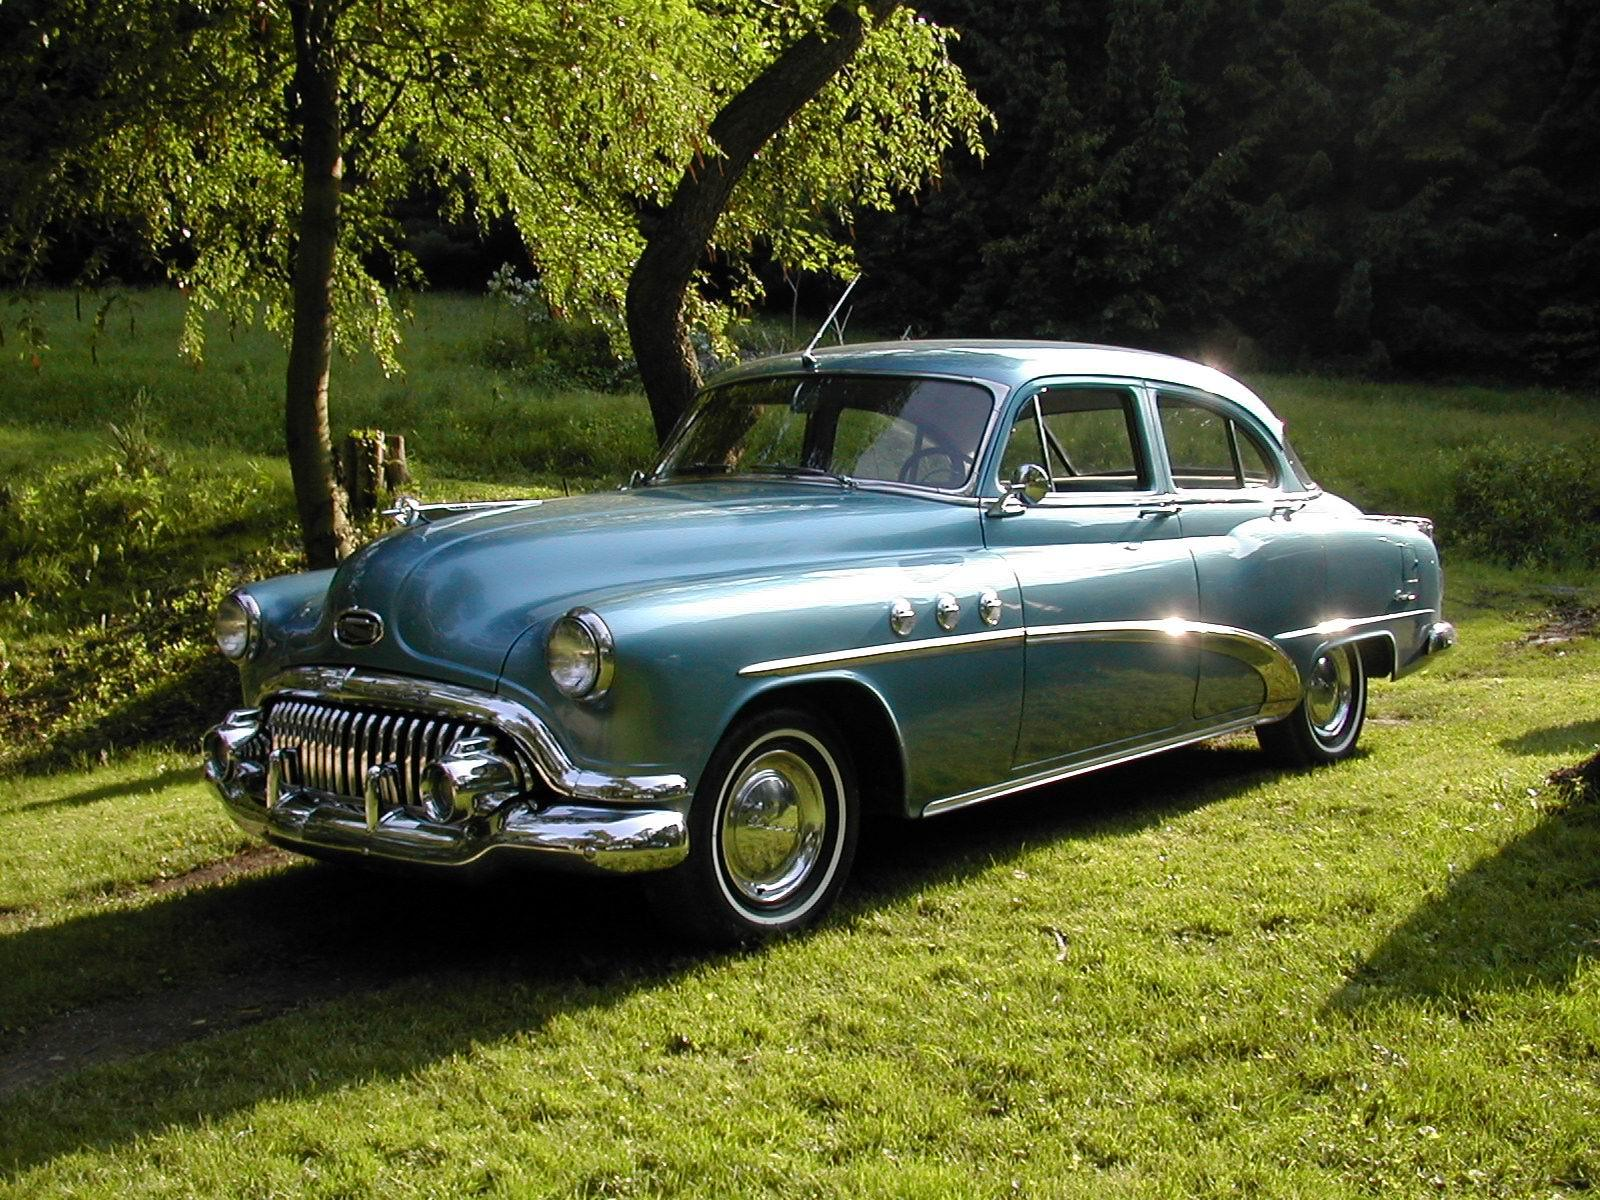 TREEDAWG 1952 Buick Special